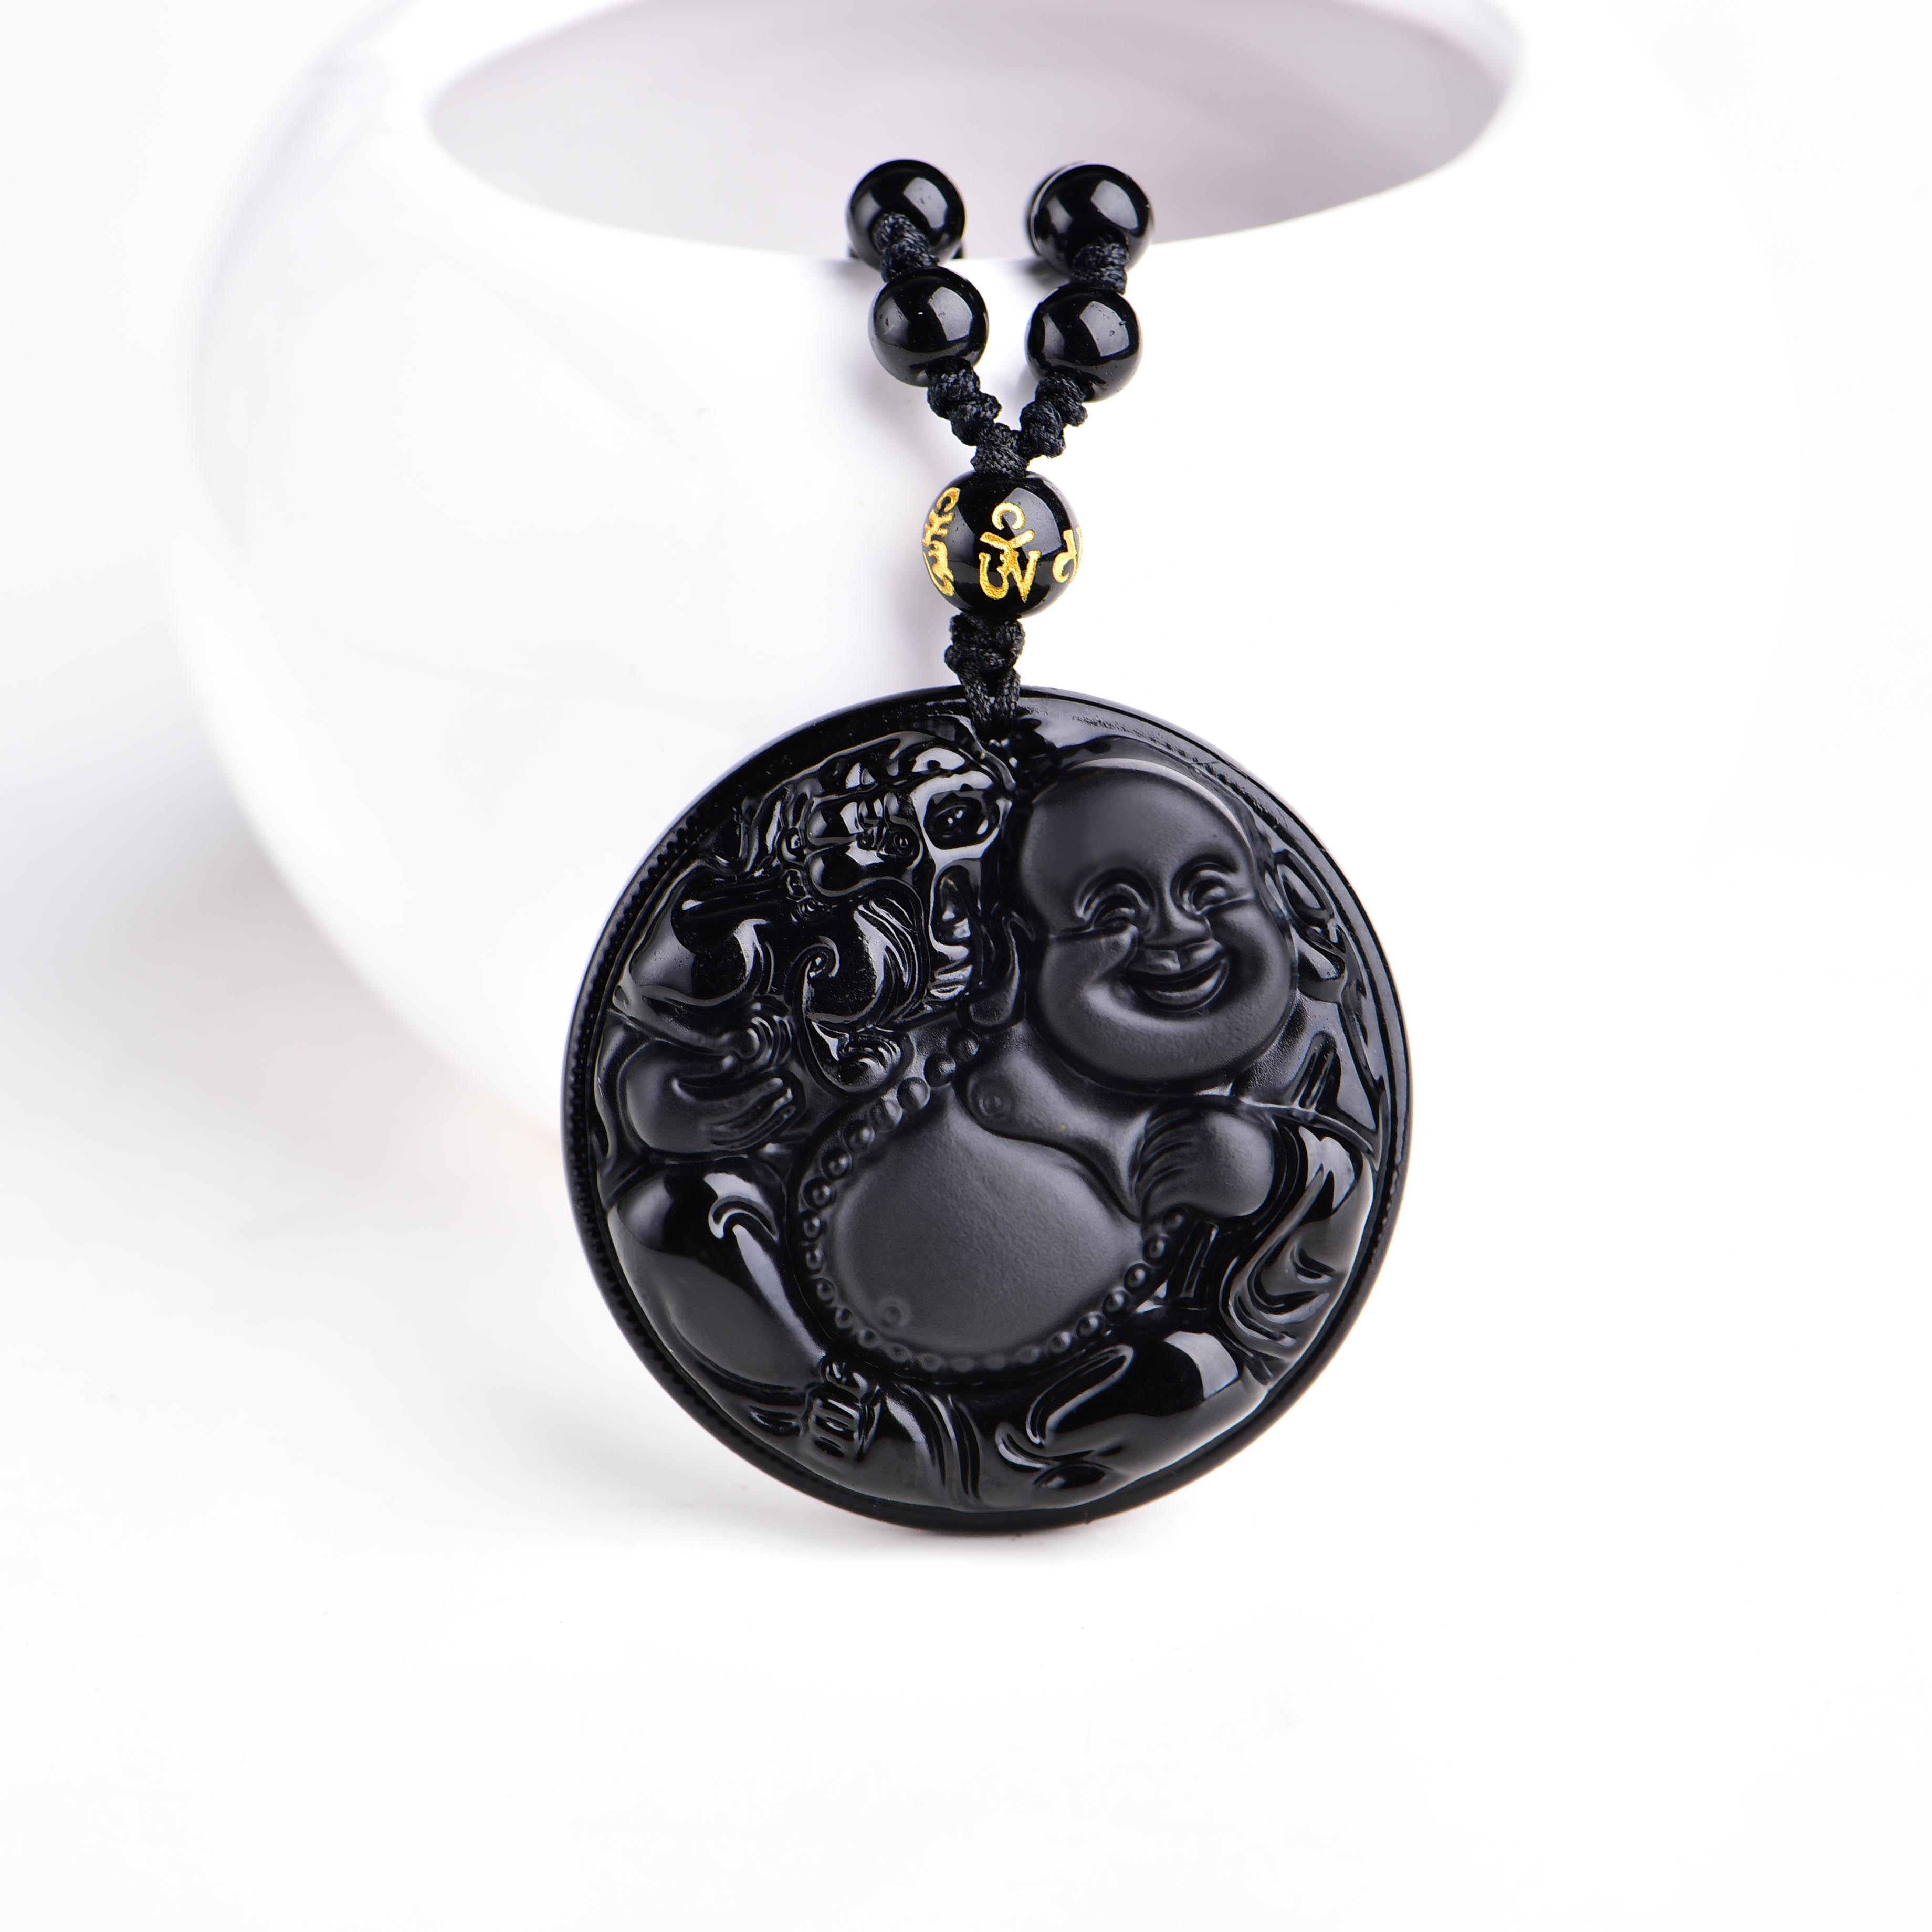 Protective obsidian happy buddha pendant necklace in velvet pouch protective obsidian happy buddha pendant necklace in velvet pouch hand carved aloadofball Image collections